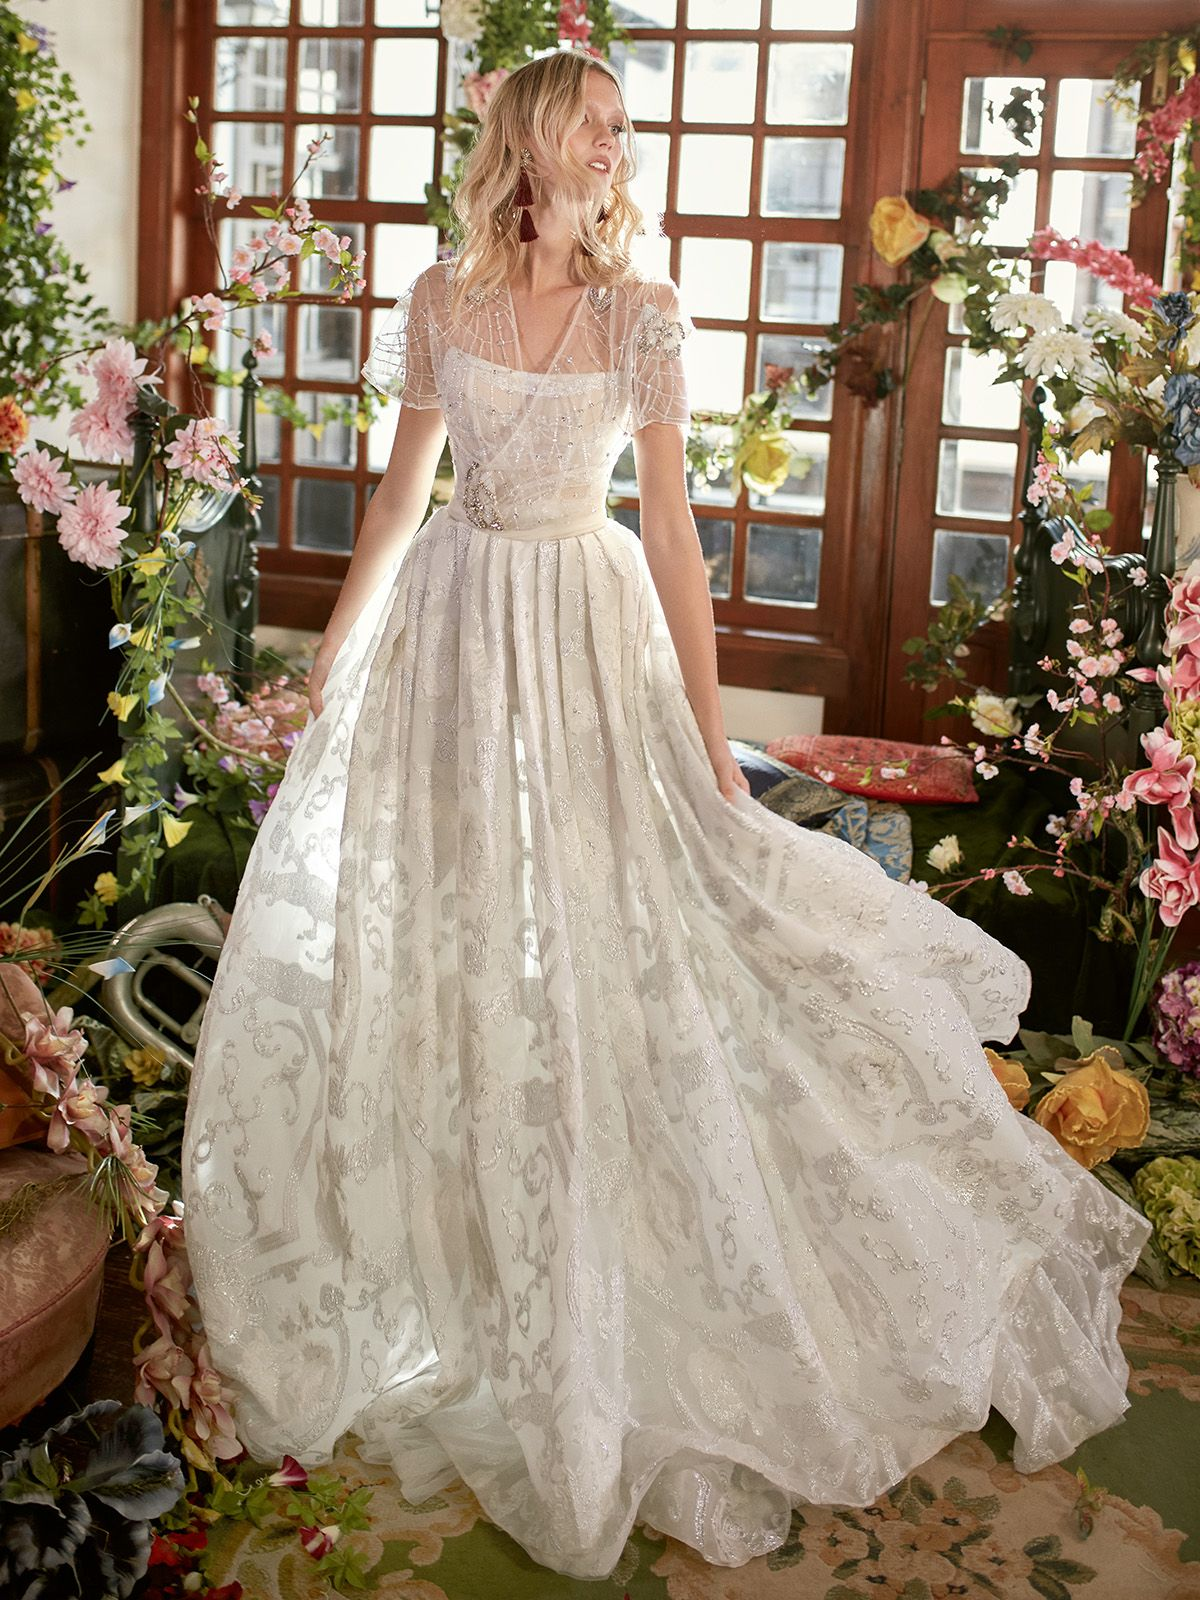 A rustic wedding deserves an elegant and statement dress and we just